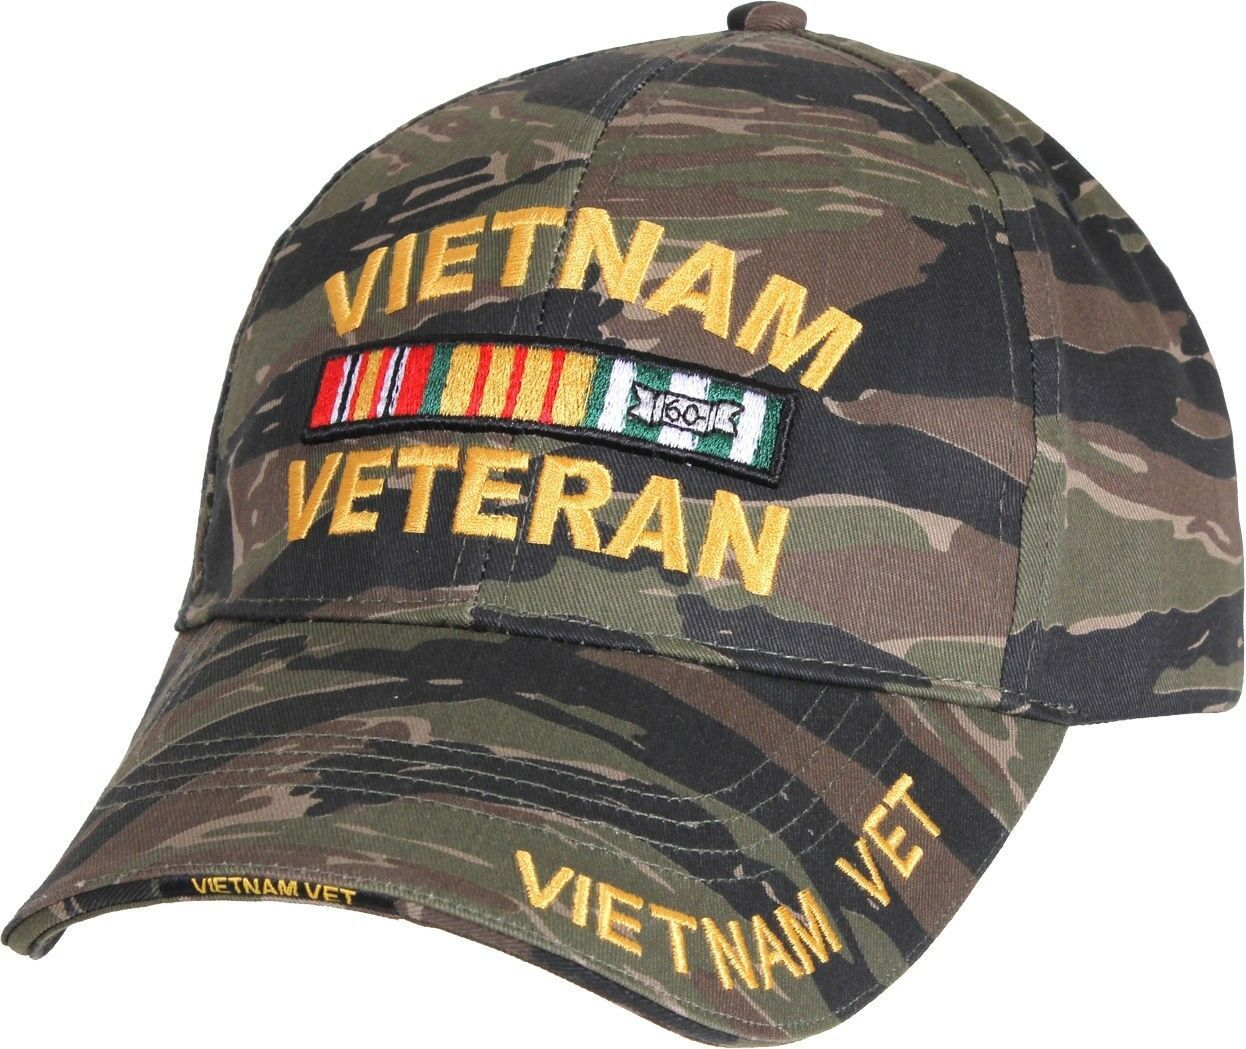 Primary image for Tiger Stripe Camouflage Vietnam Veteran Military Adjustable Cap